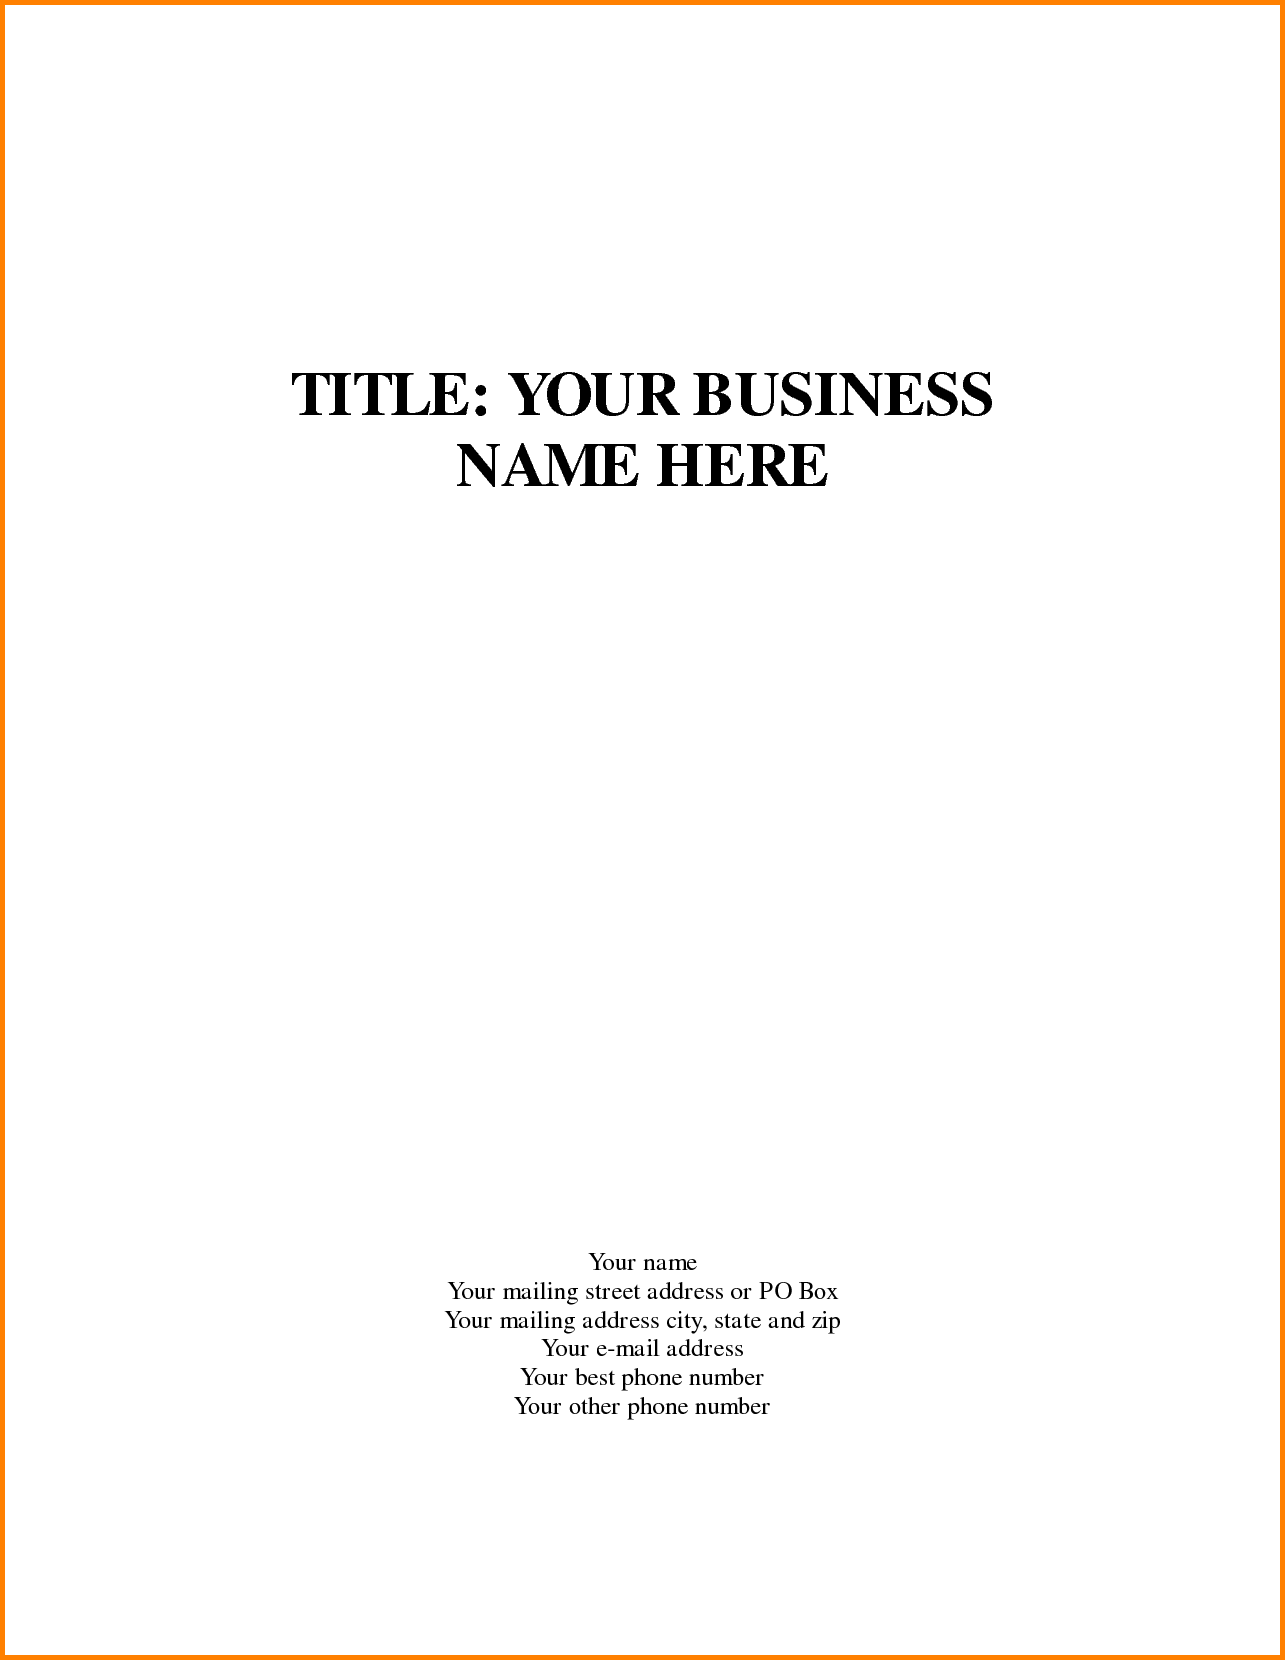 004 essay titles mla cover page template for titlepage